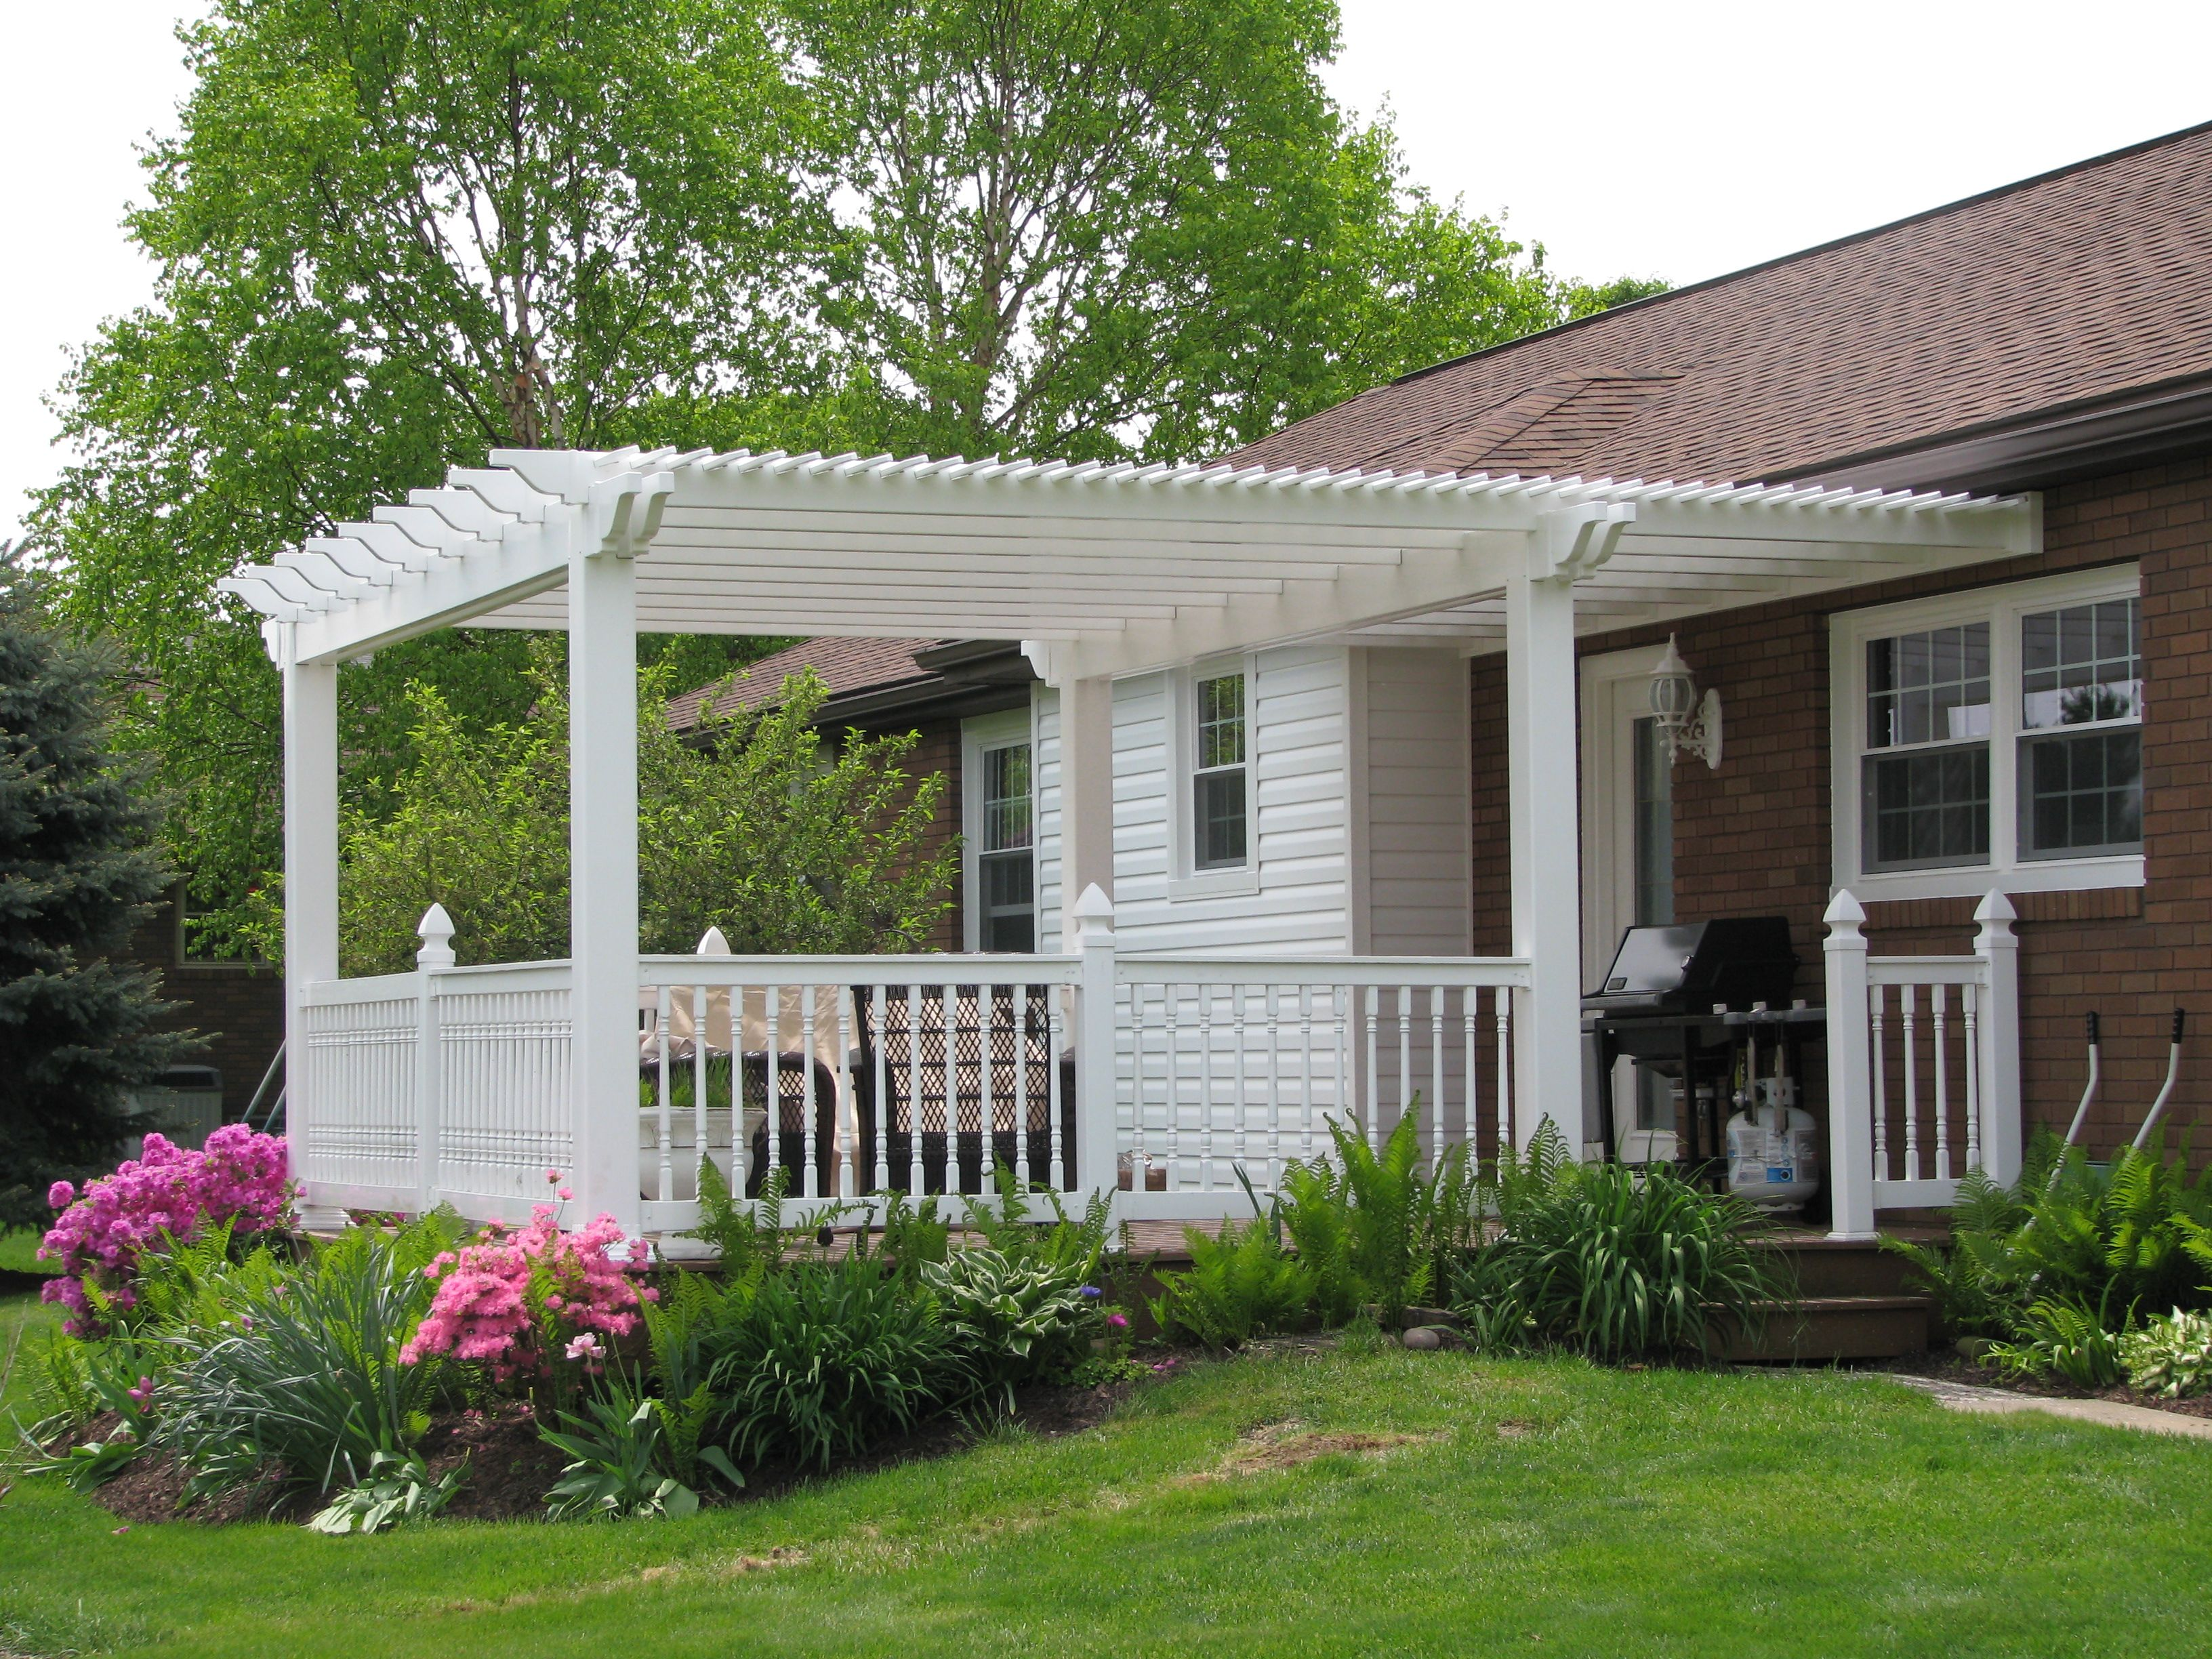 Quality Built Vinyl Pergolas Mount Hope Fence In Ohio Pergola Vinyl Pergola Pergola Patio